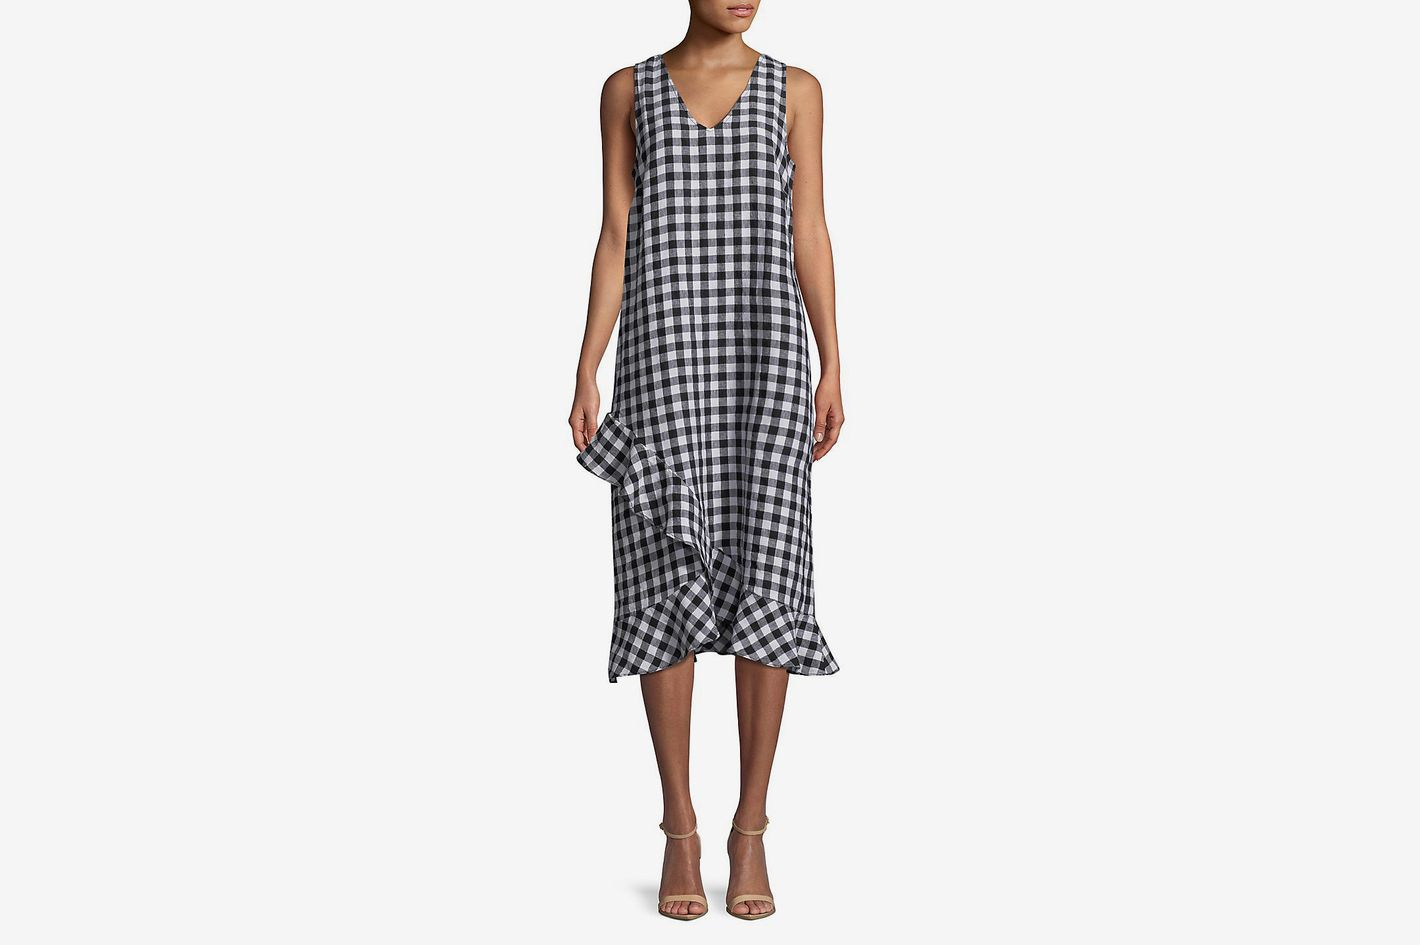 Lord & Taylor Gingham Ruffle Dress